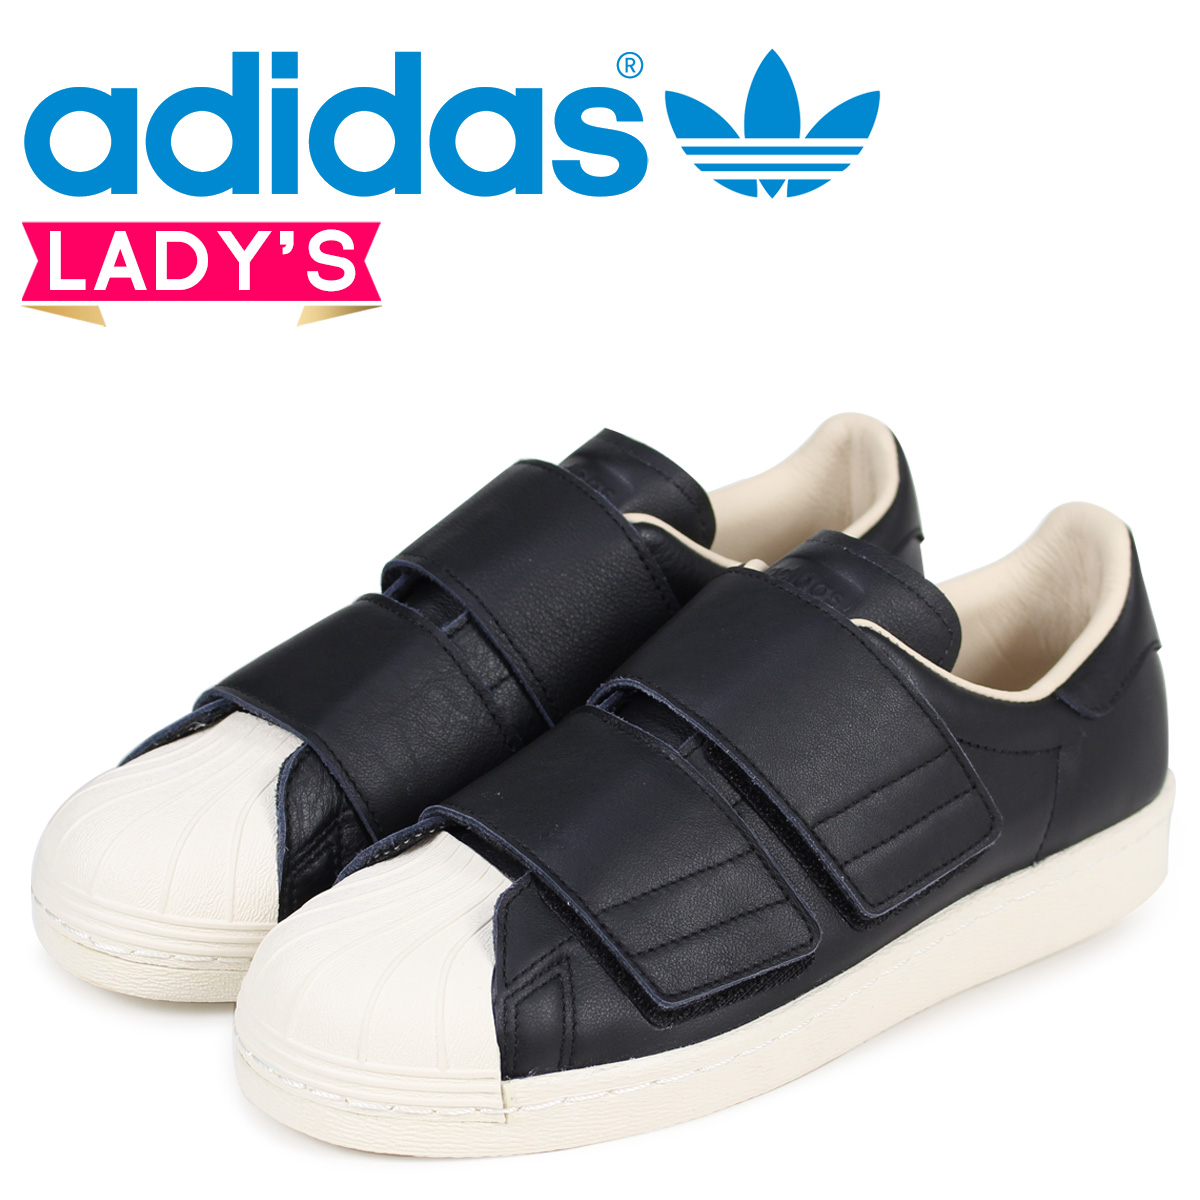 available wholesale price the sale of shoes adidas Originals superstar 80s Adidas Lady's sneakers Velcro SUPER STAR  VELCRO W CQ2448 black black originals